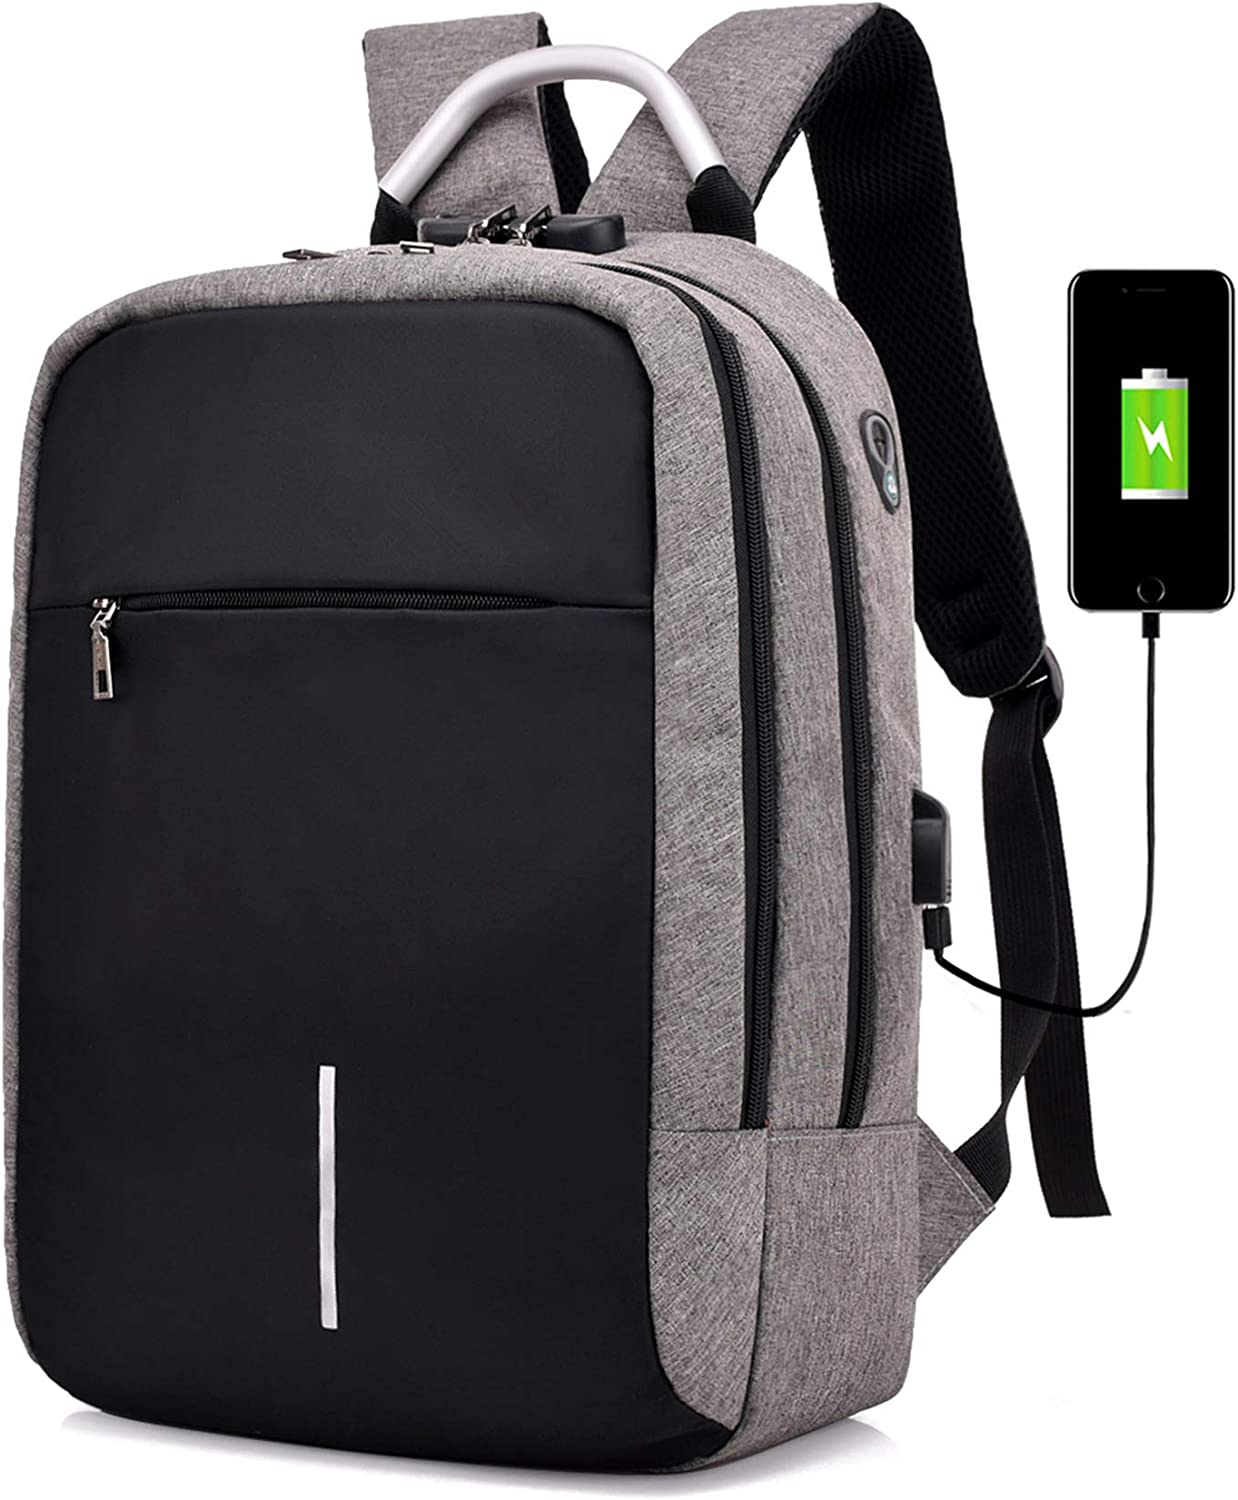 Laptop Backpack, Travel Backpack with USB Charging Port and Earphone Plug, Anti-Theft Password Lock, Business Backpack for Male and Female,College Student Computer Backpack for 15.6'Laptop